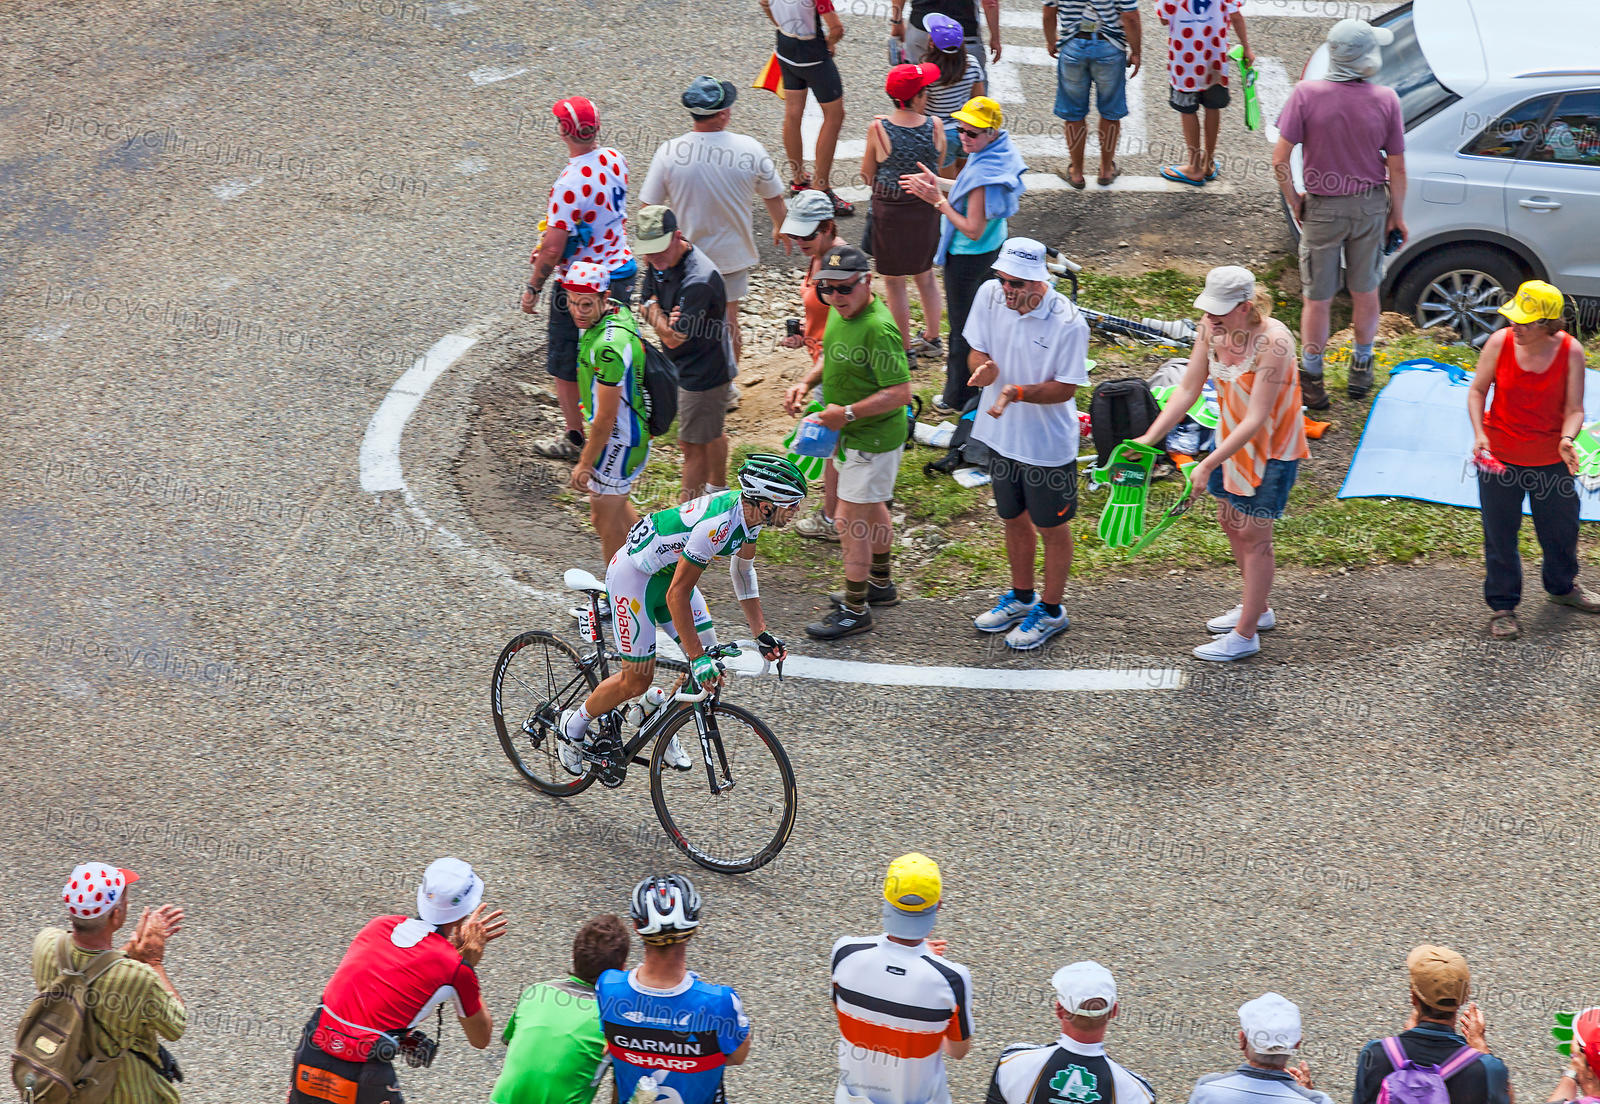 The Cyclist Julien El Fares - Tour de France 2013